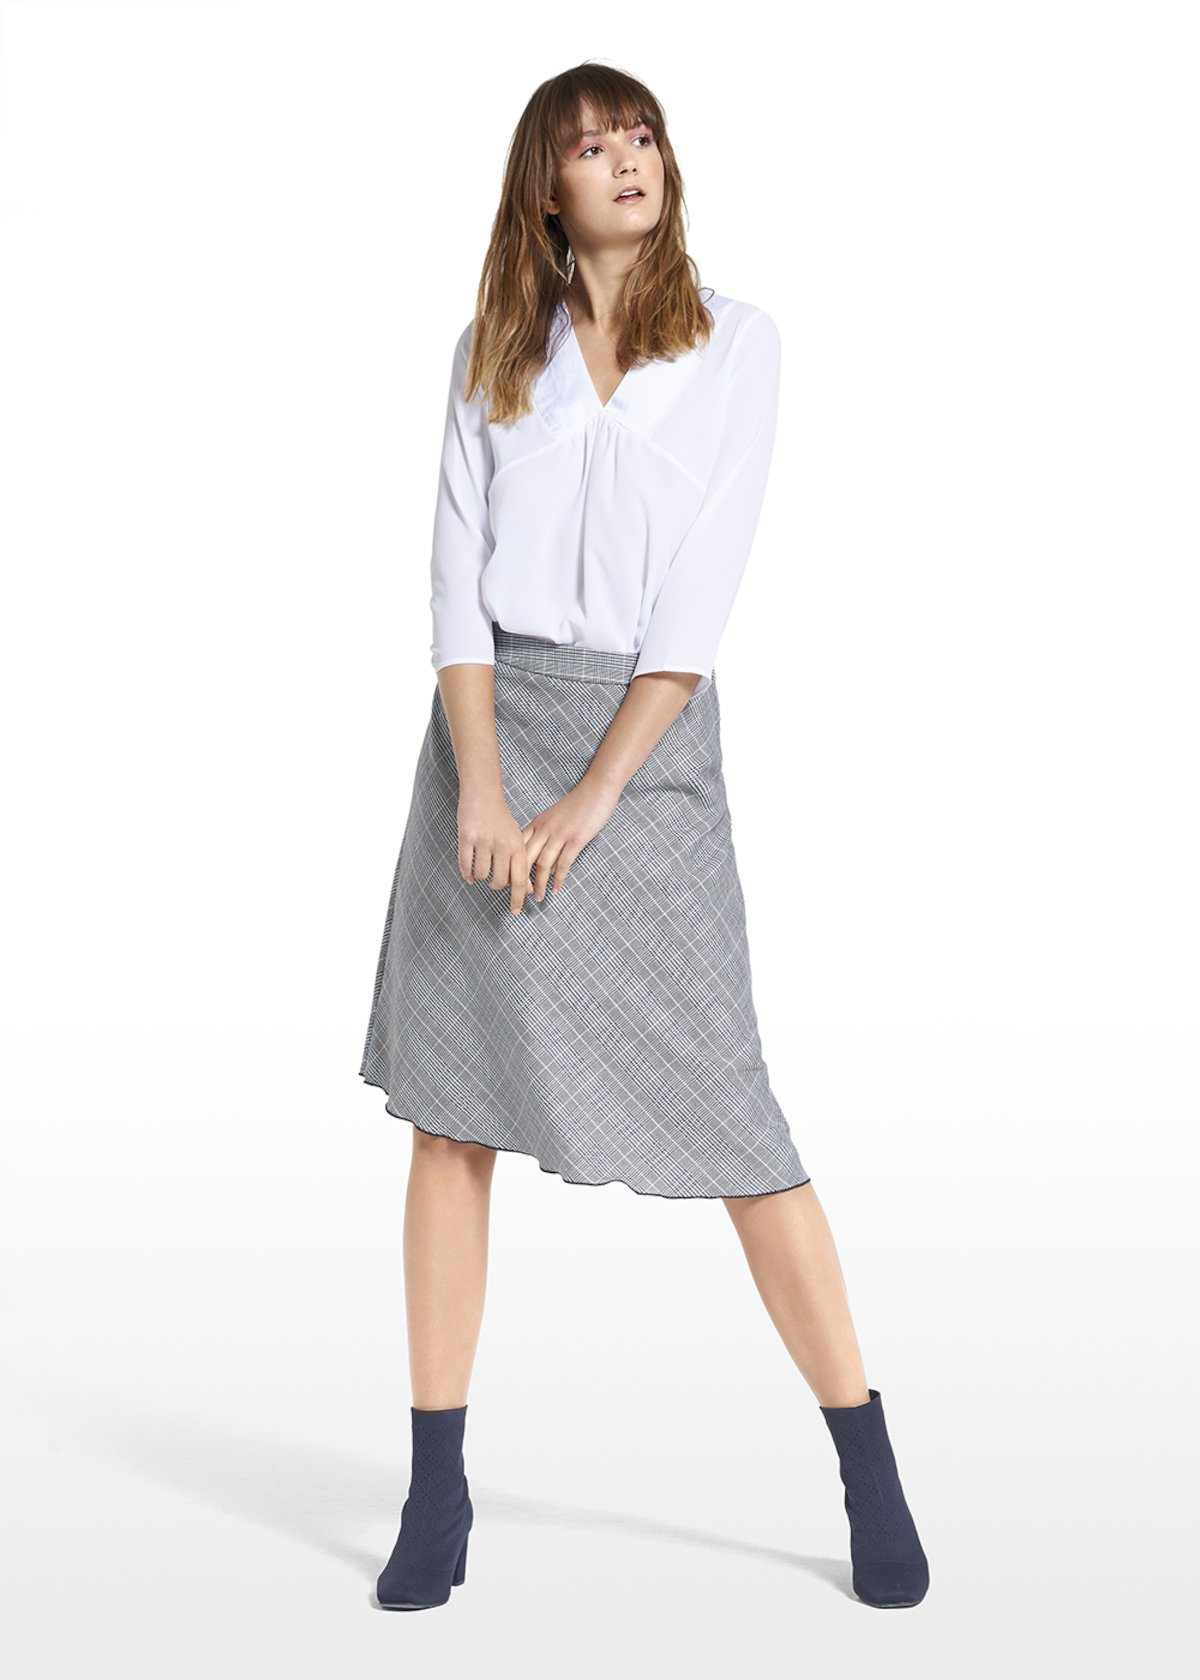 Skirt Geky with check pattern - Black White Fantasia - Woman - Category image